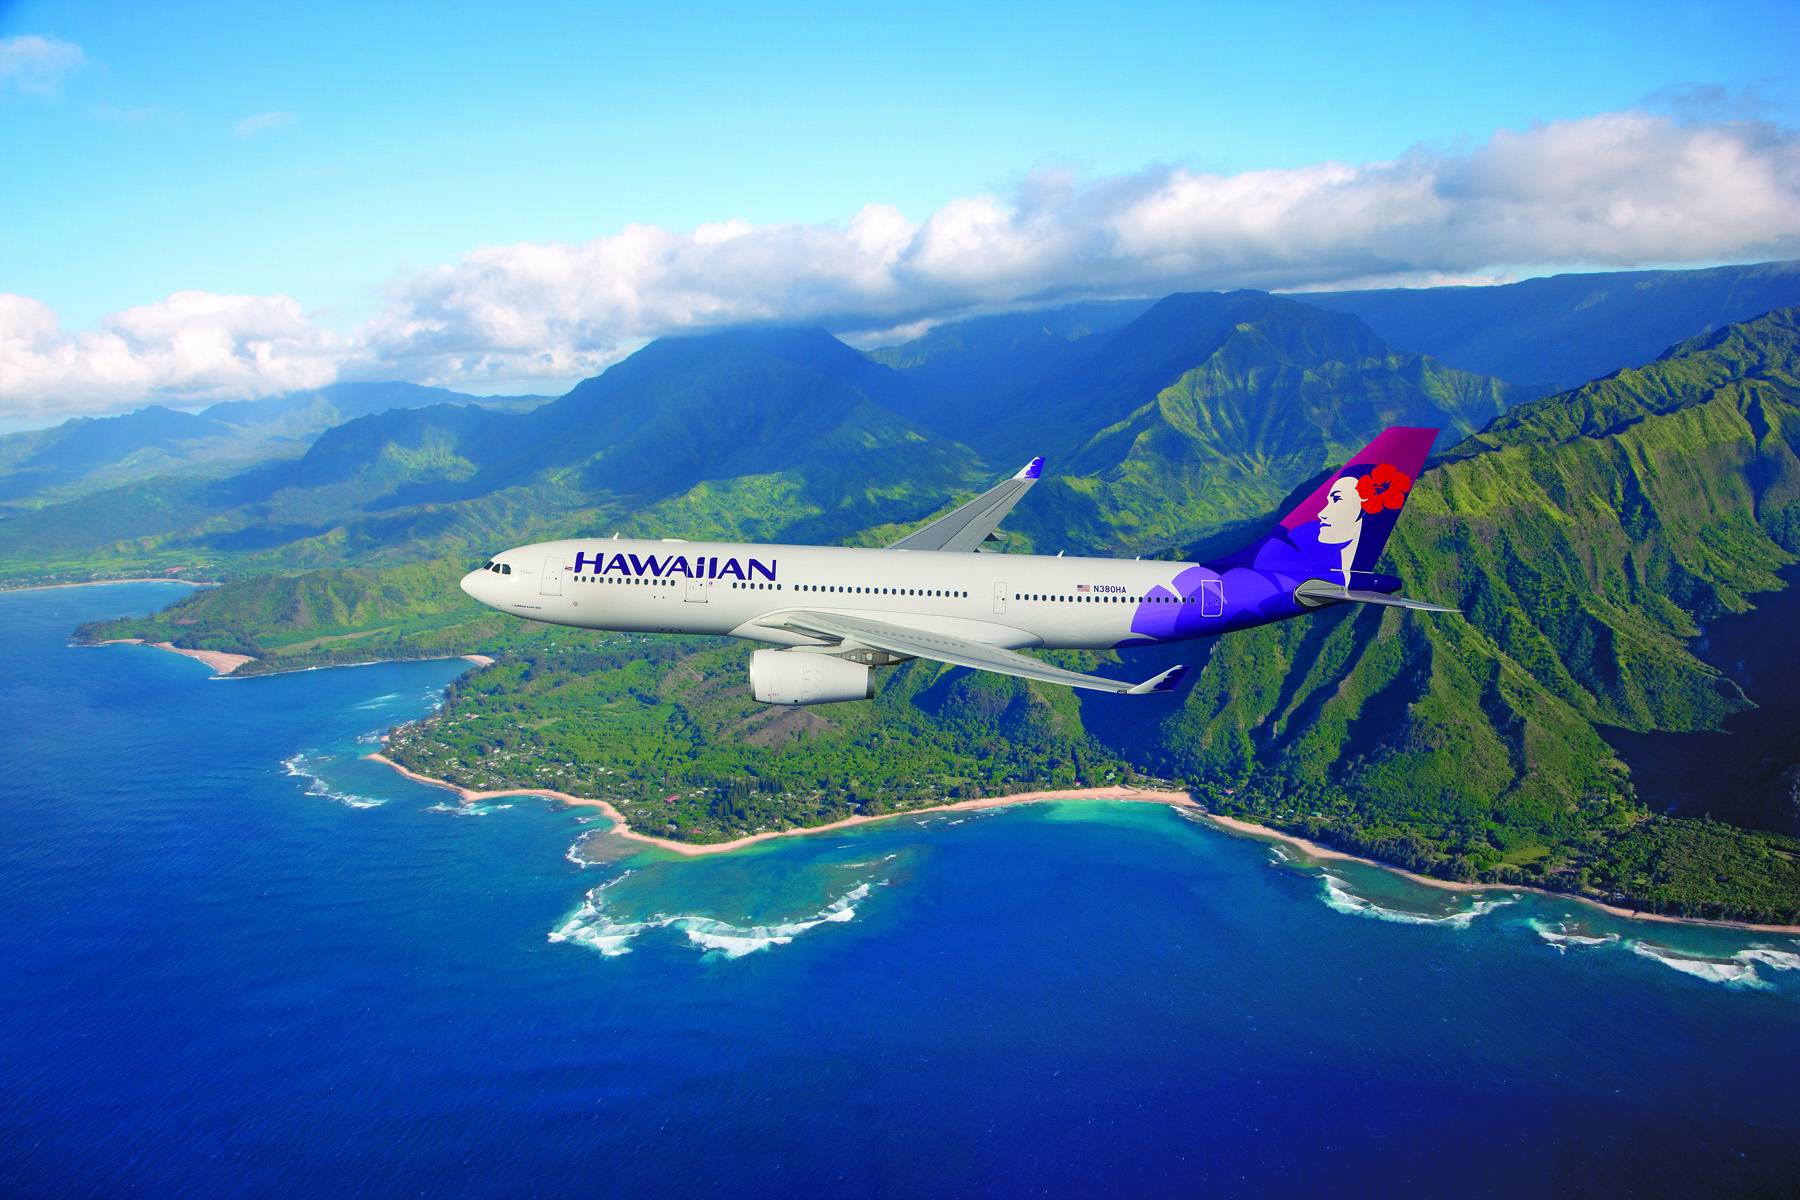 Hawaiian Airlines Celebrates 90th Year of Service with Giving Campaign